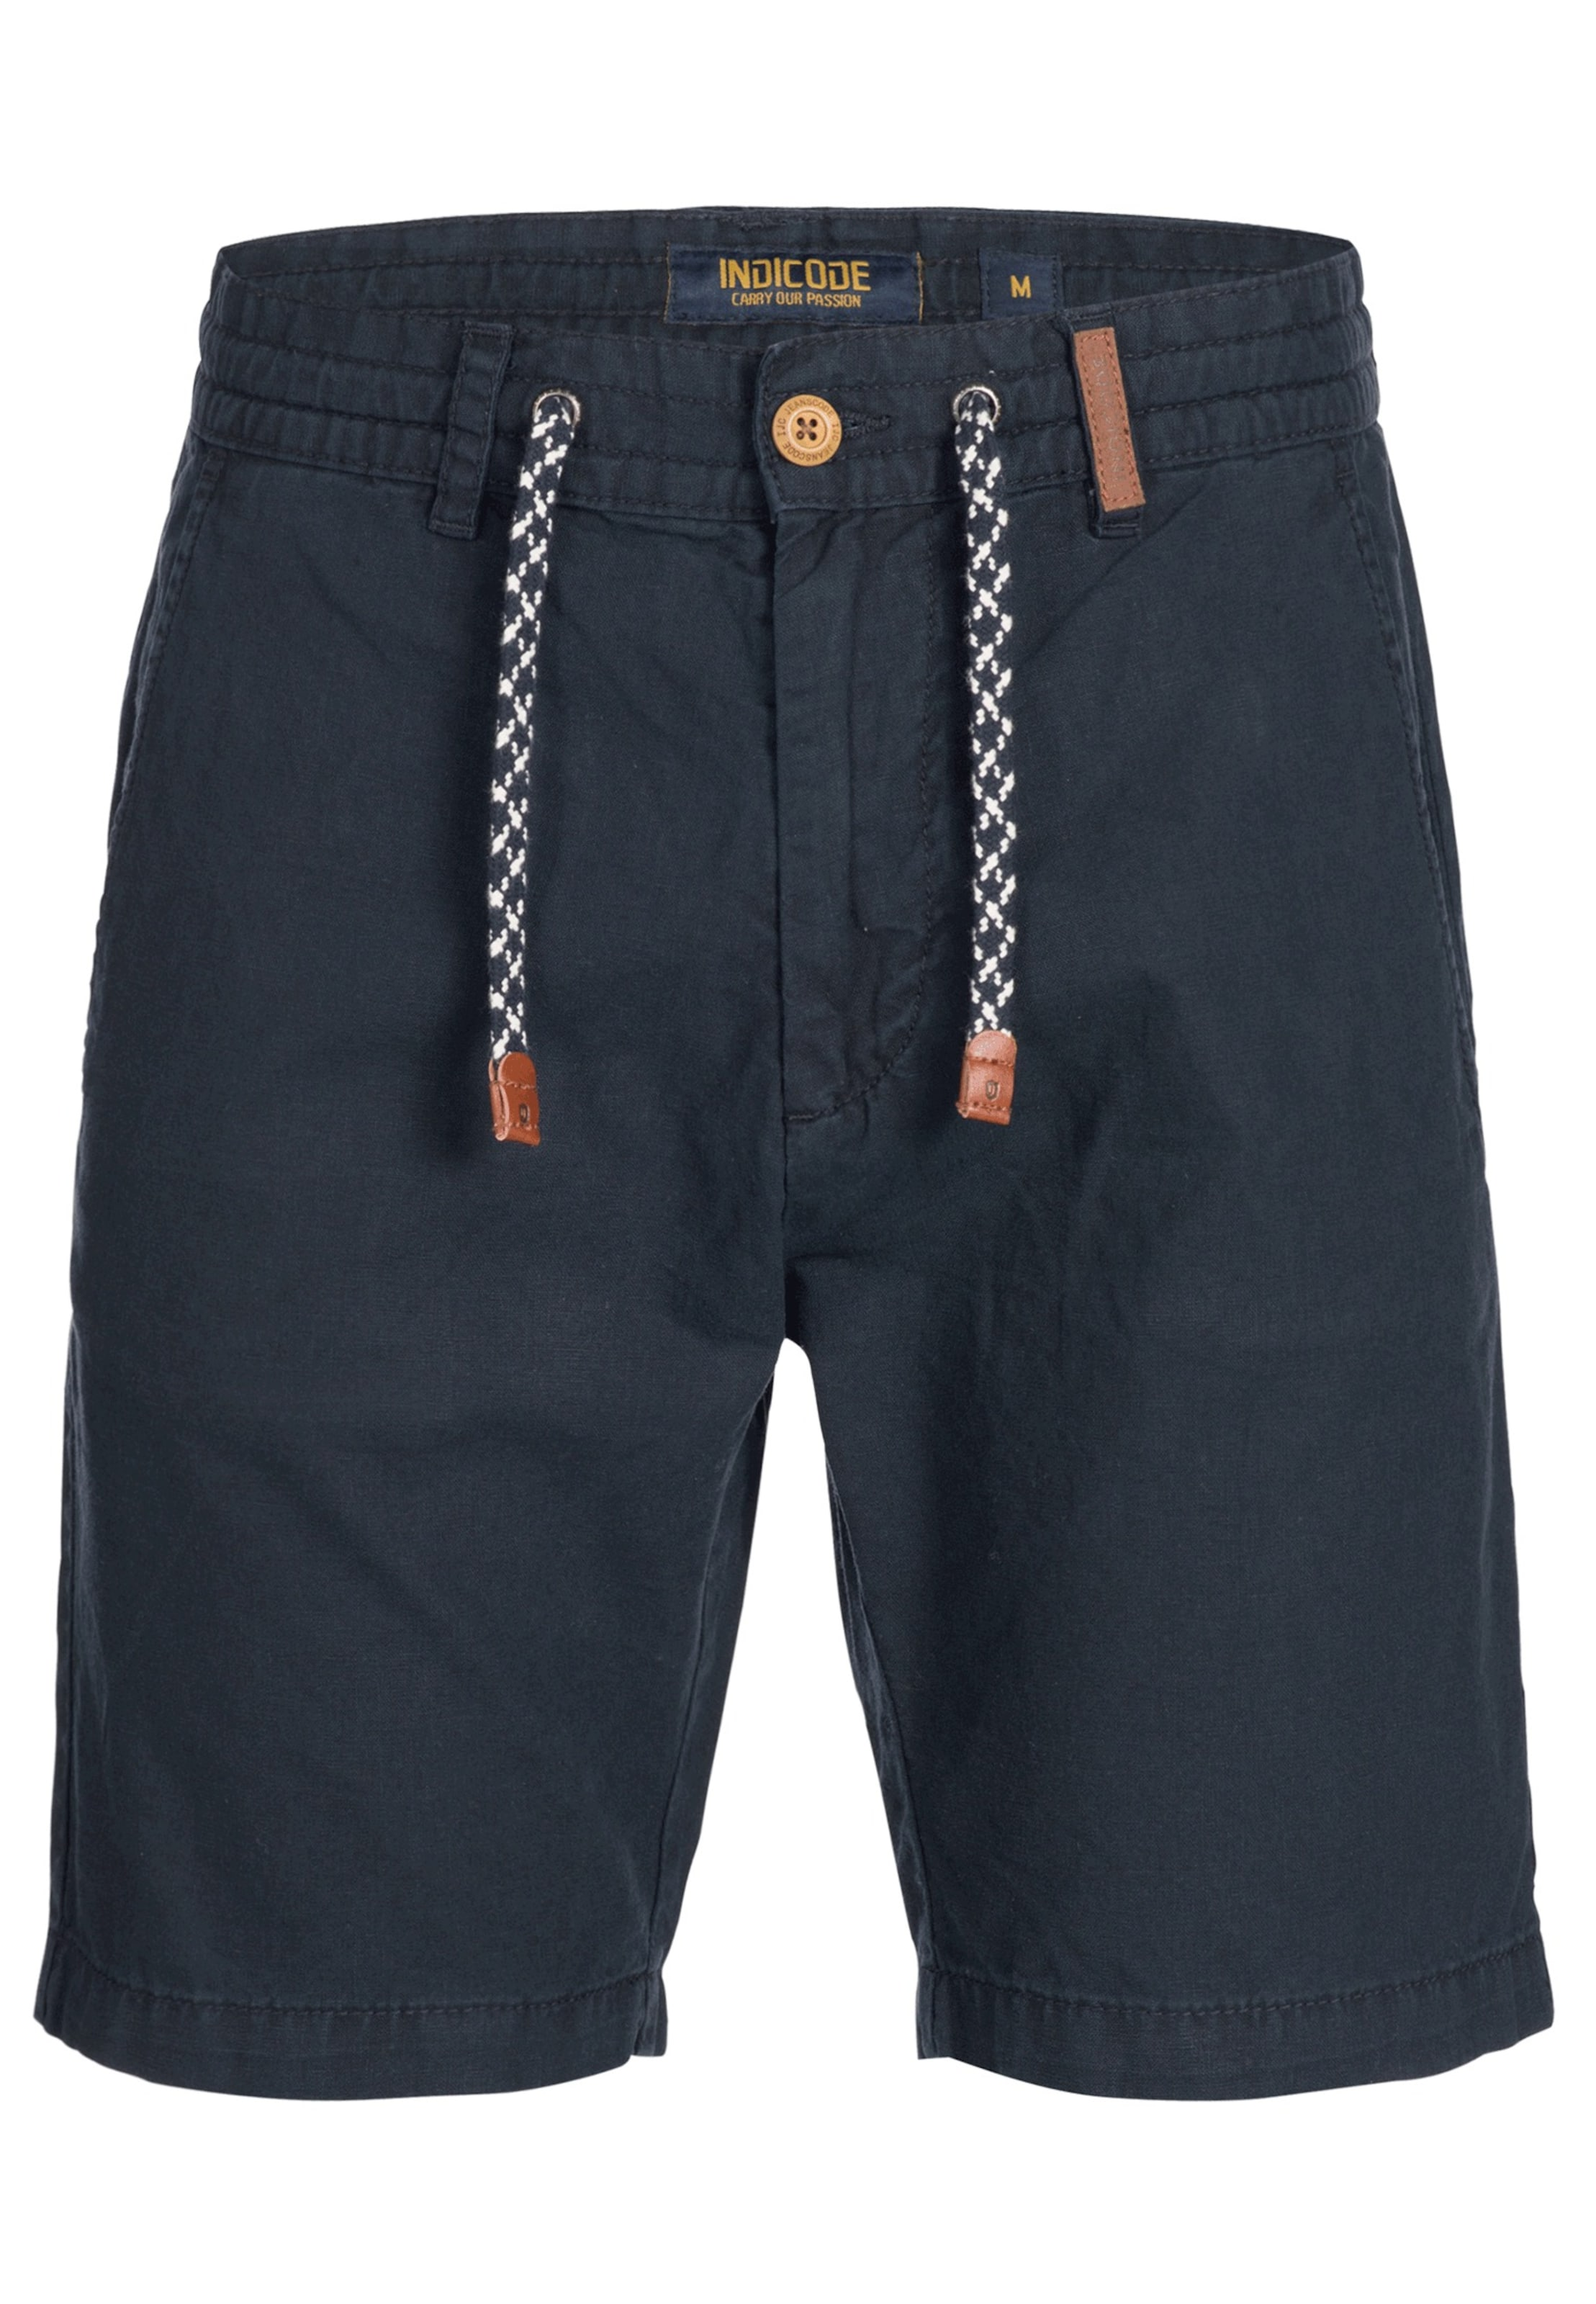 Jeans Shorts Indicode In Navy 'bowmanville' O8wkn0XP